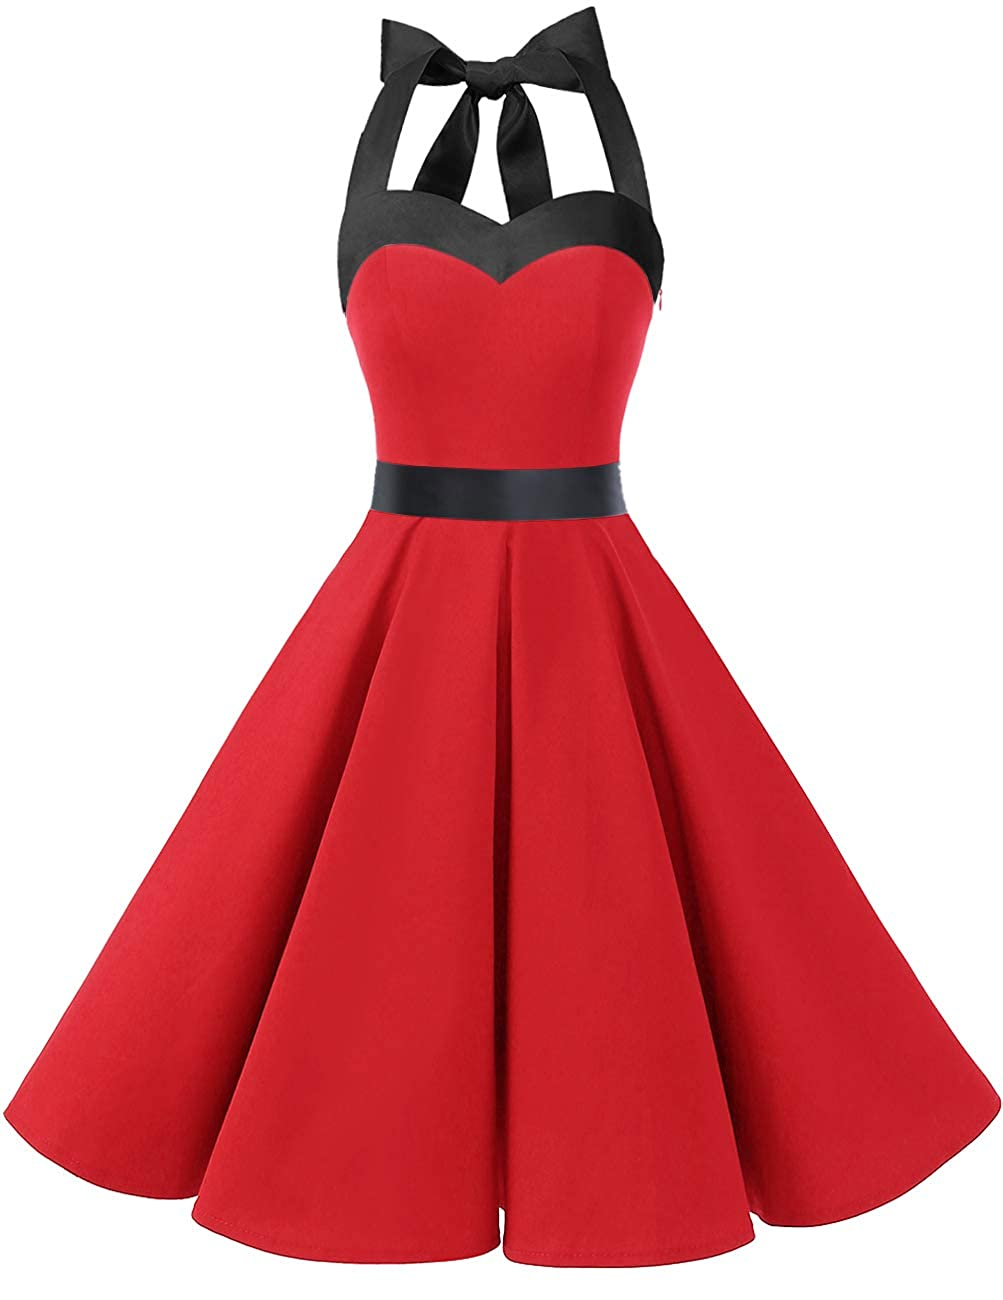 TALLA XXL. Dresstells® Halter 50s Rockabilly Polka Dots Audrey Dress Retro Cocktail Dress Red Black XXL